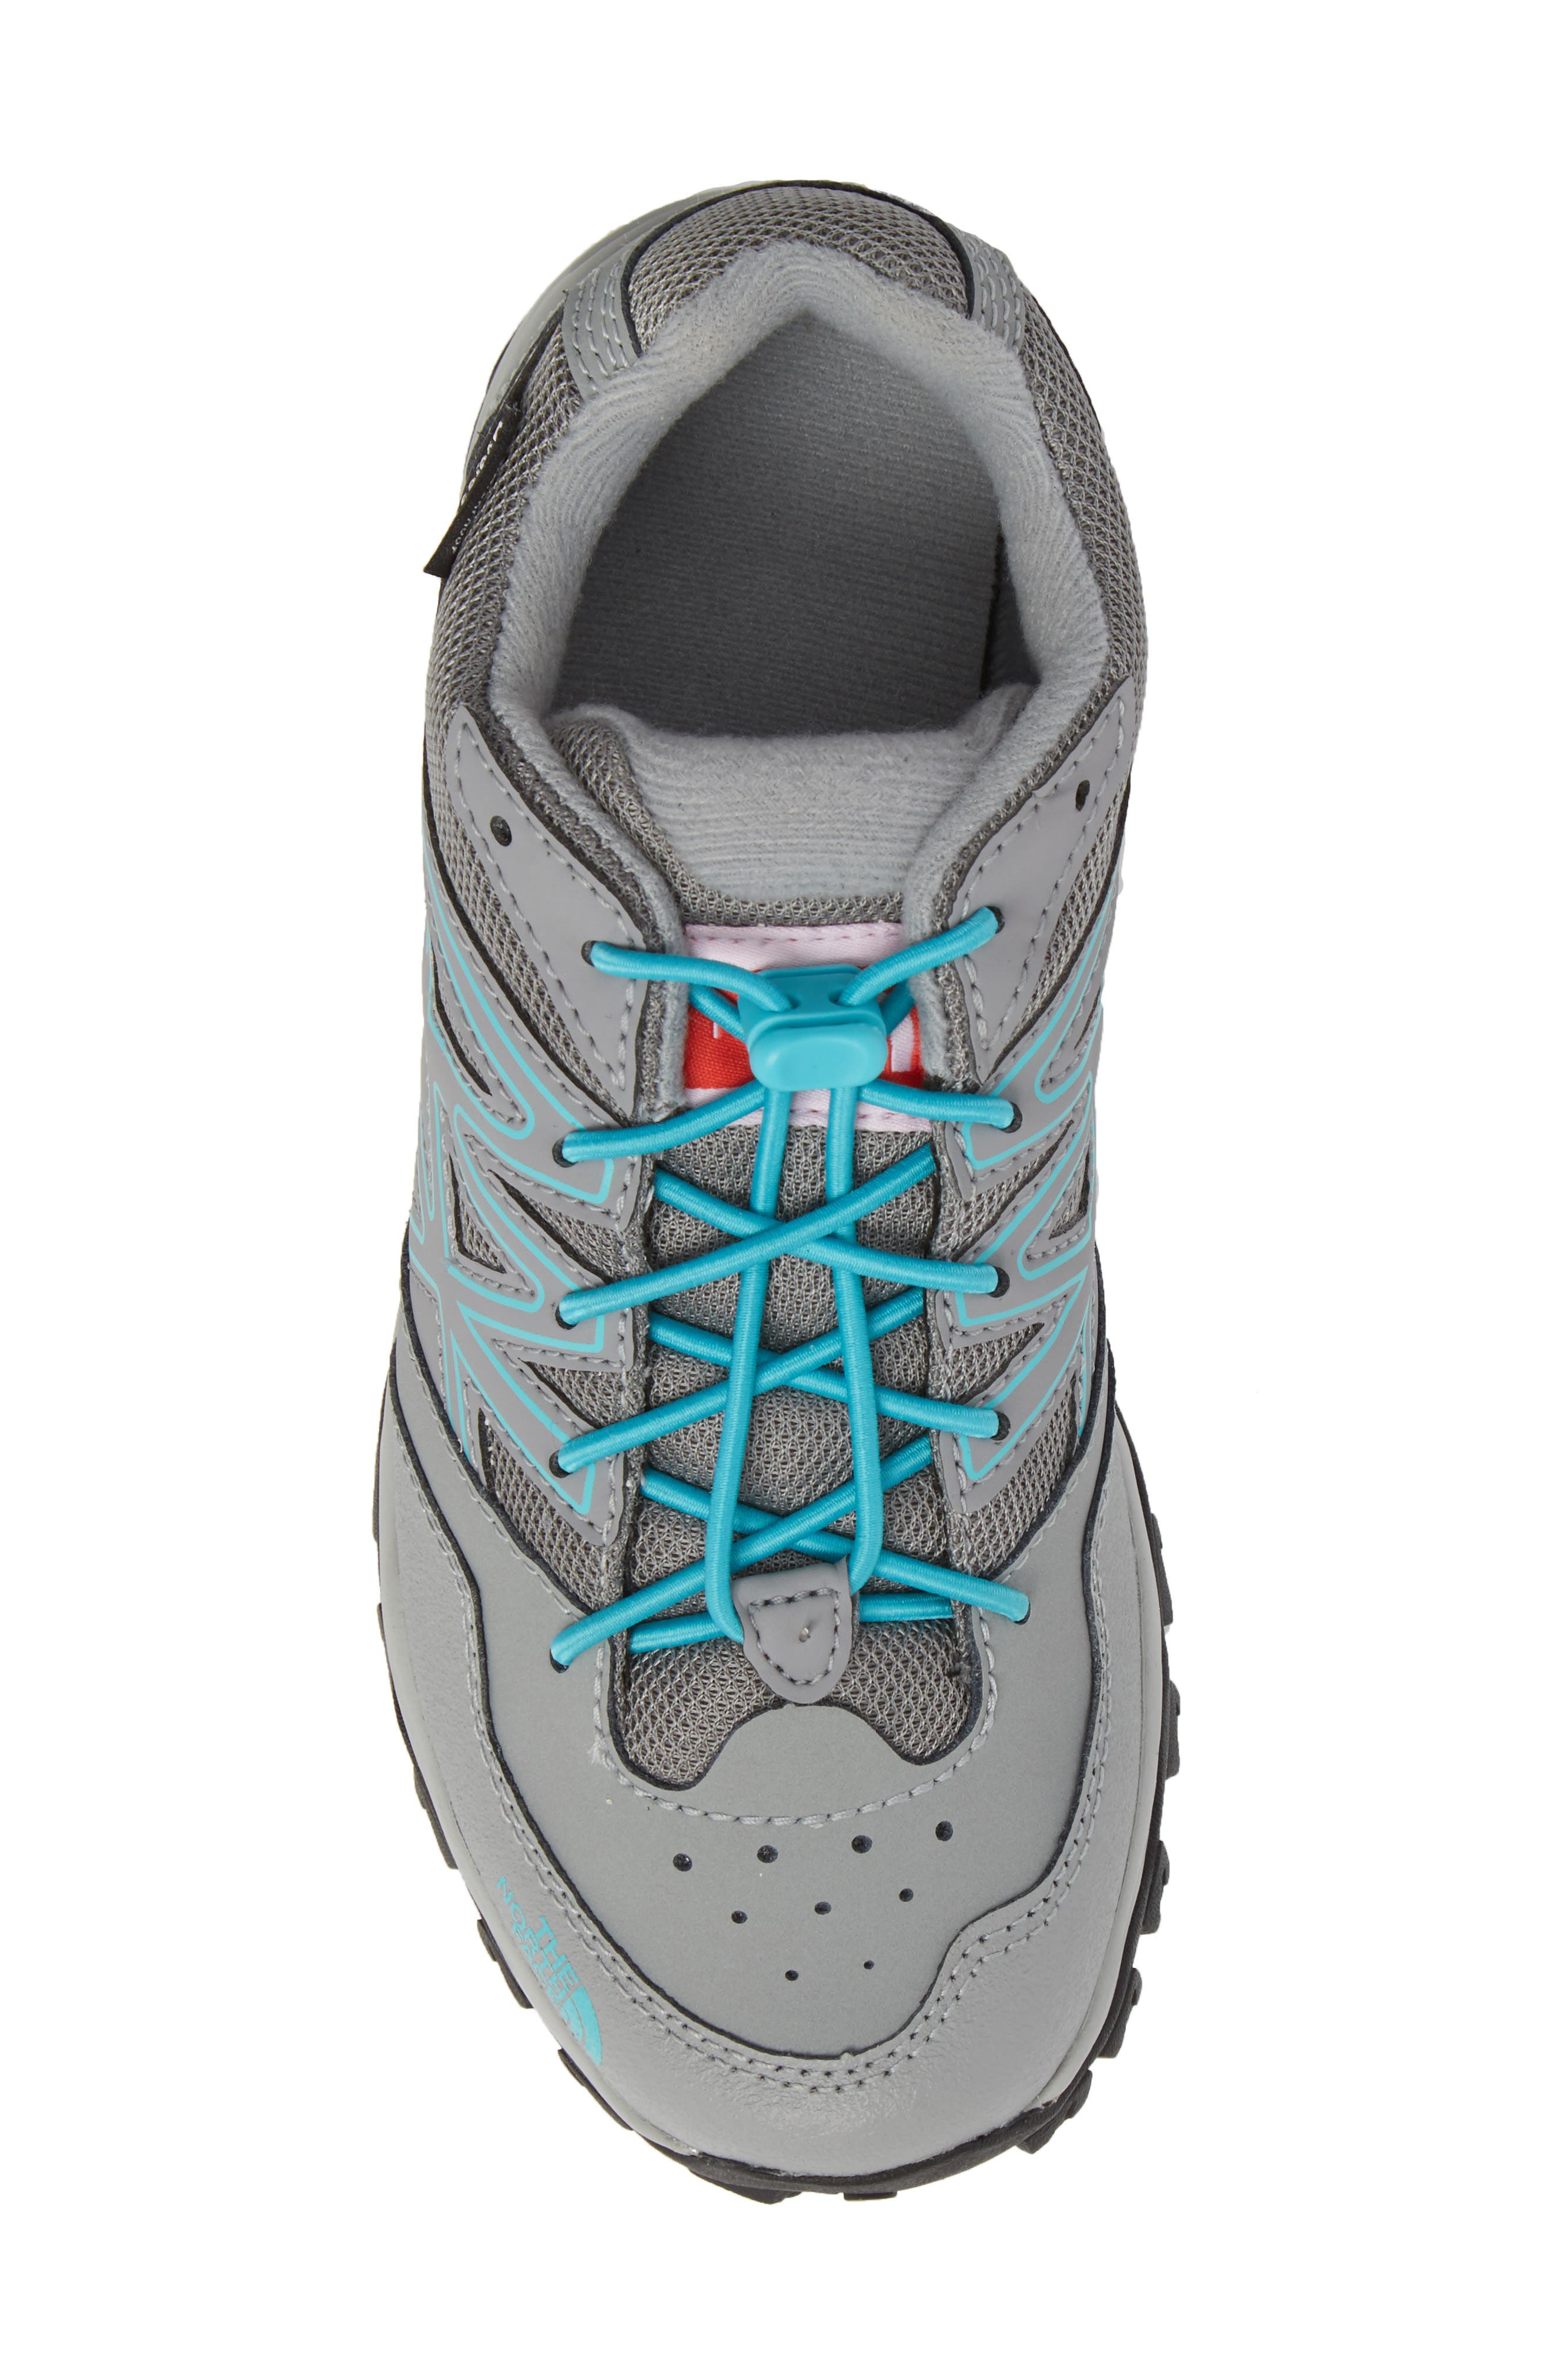 Hedgehog Hiker Boot,                             Alternate thumbnail 5, color,                             Griffin Grey/ Blue Curacao